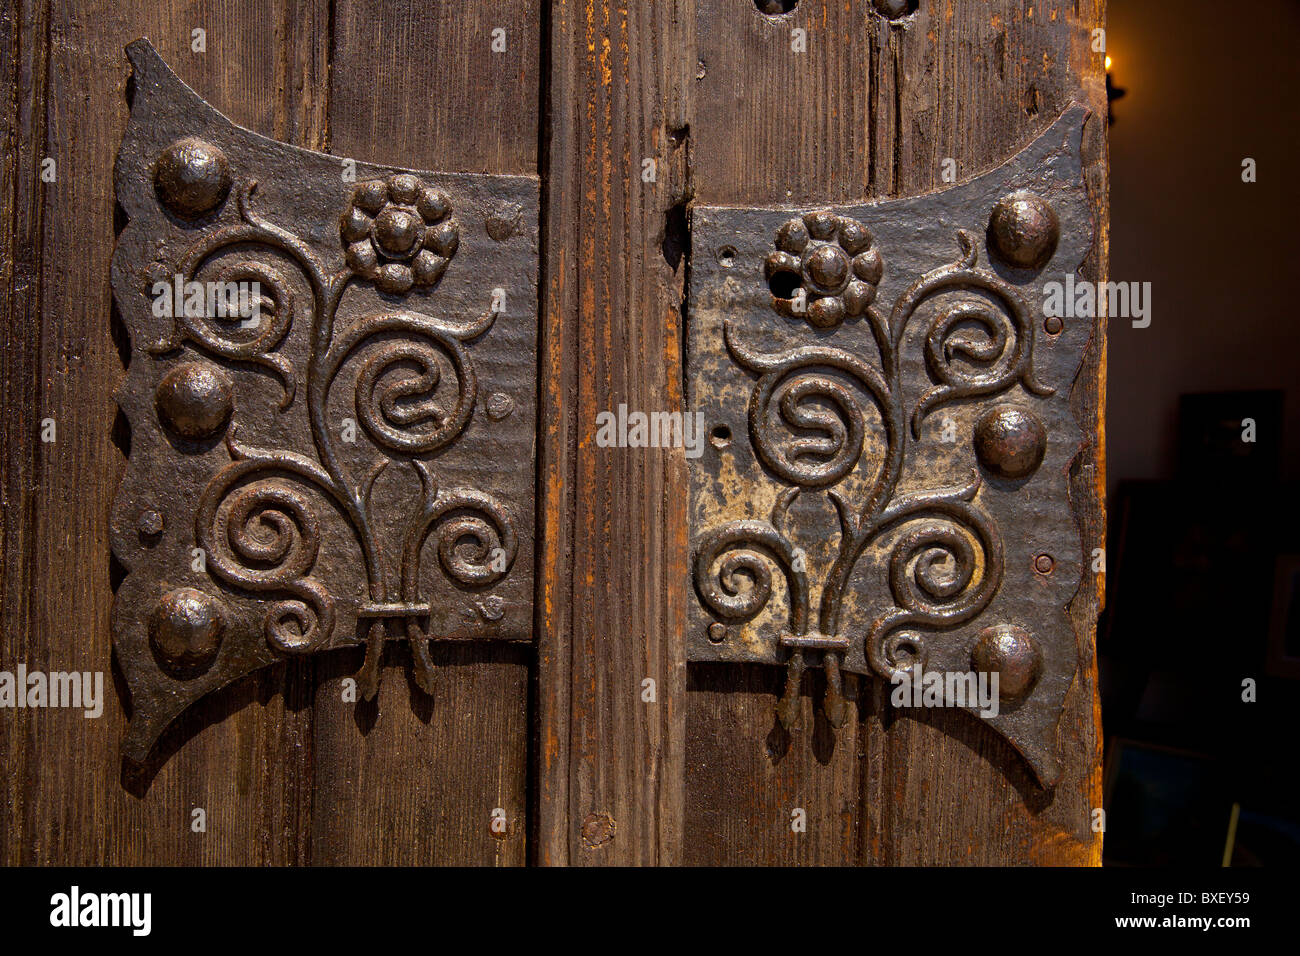 Ironwork on the doors of the Palace of Queen Marie of Roumania in Balchik, Bulgaria - Stock Image